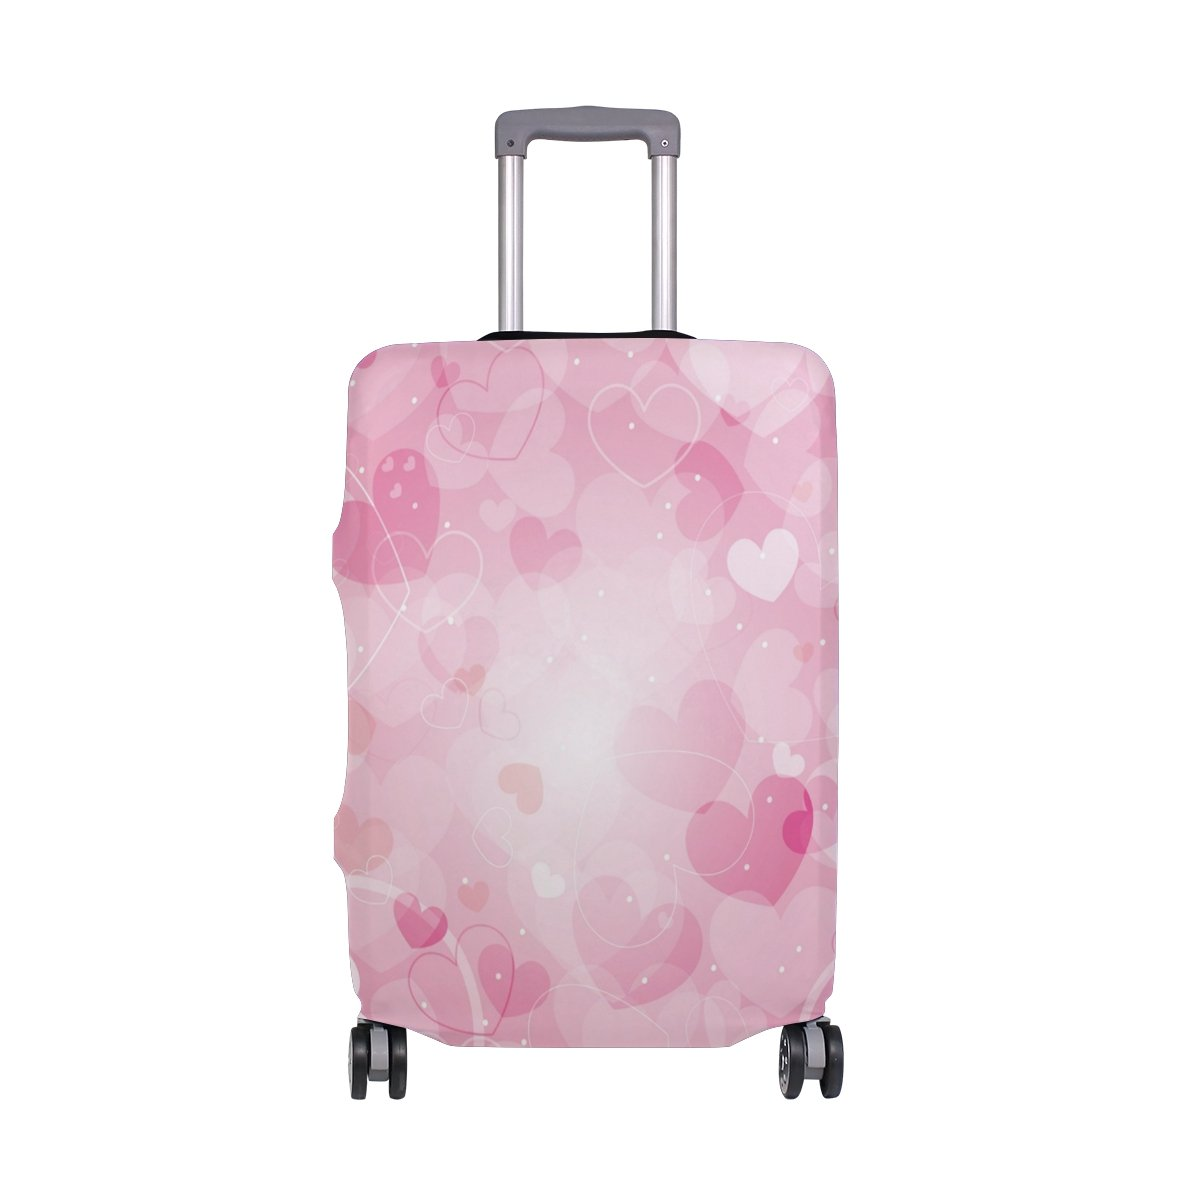 ALAZA Hearts Valentine's Day Wedding Luggage Cover Fits 28-29 Inch Suitcase Spandex Travel Protector L